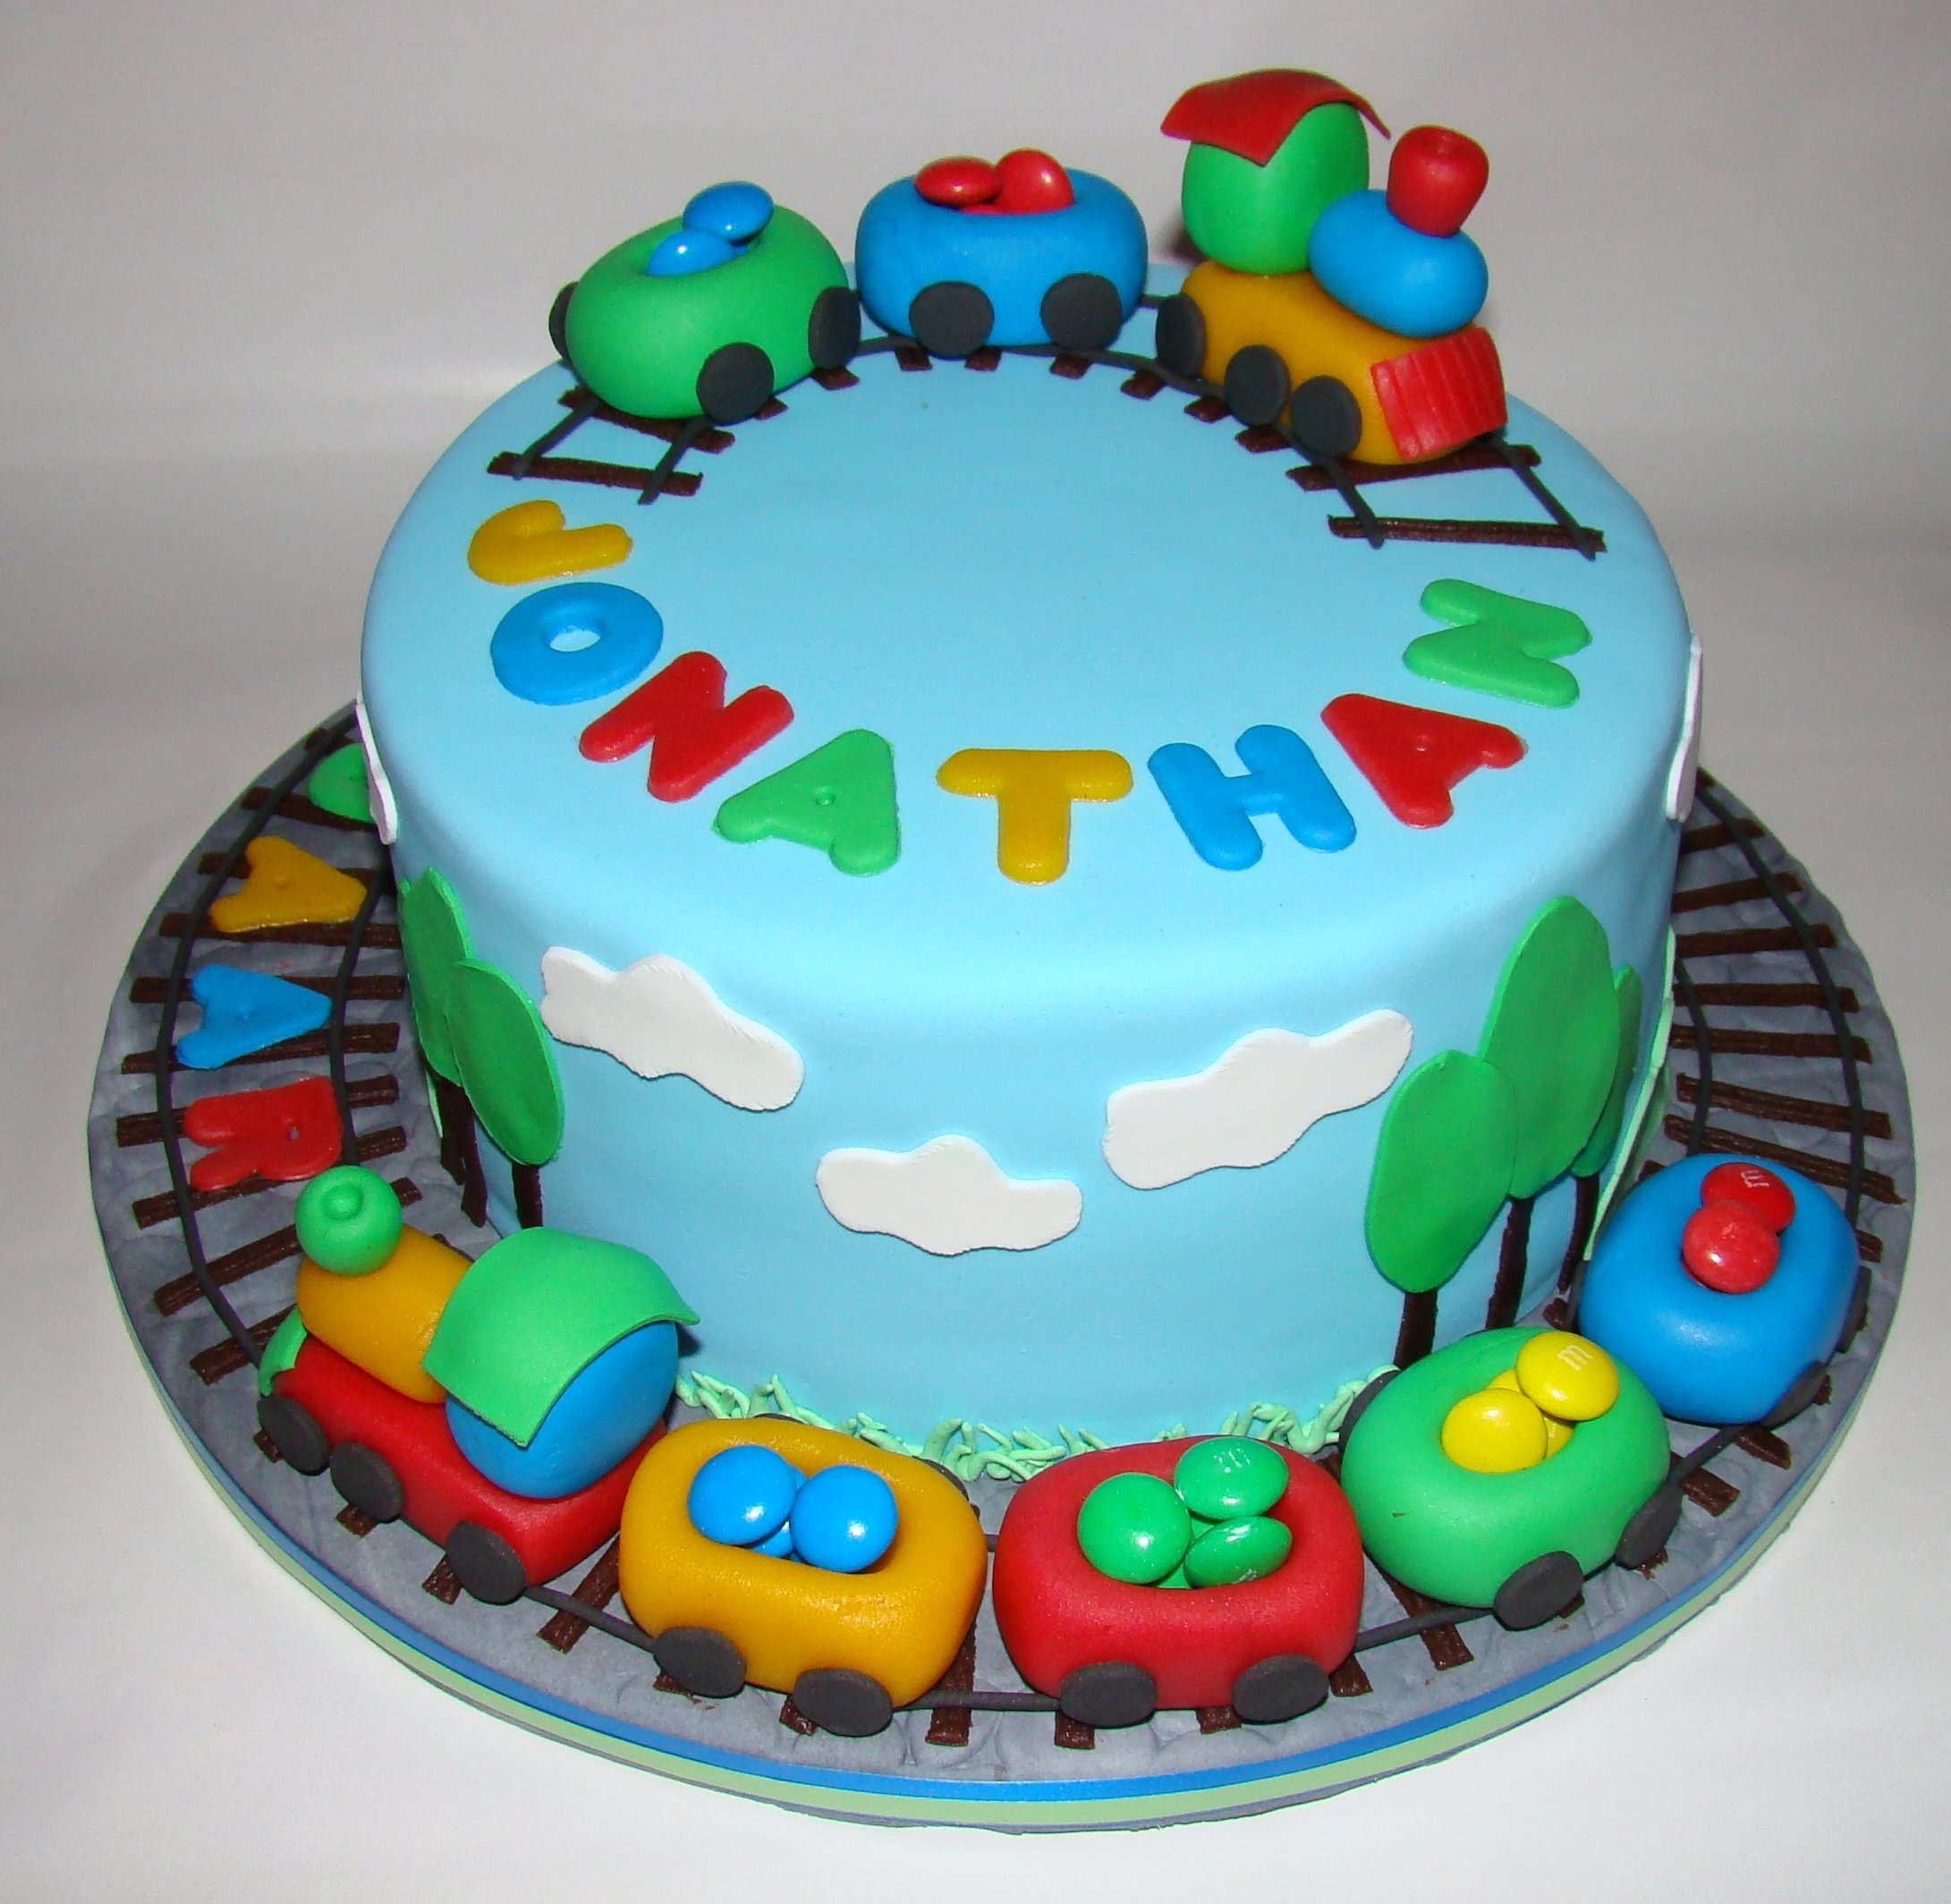 10 Amazing 2 Year Old Birthday Cake Ideas